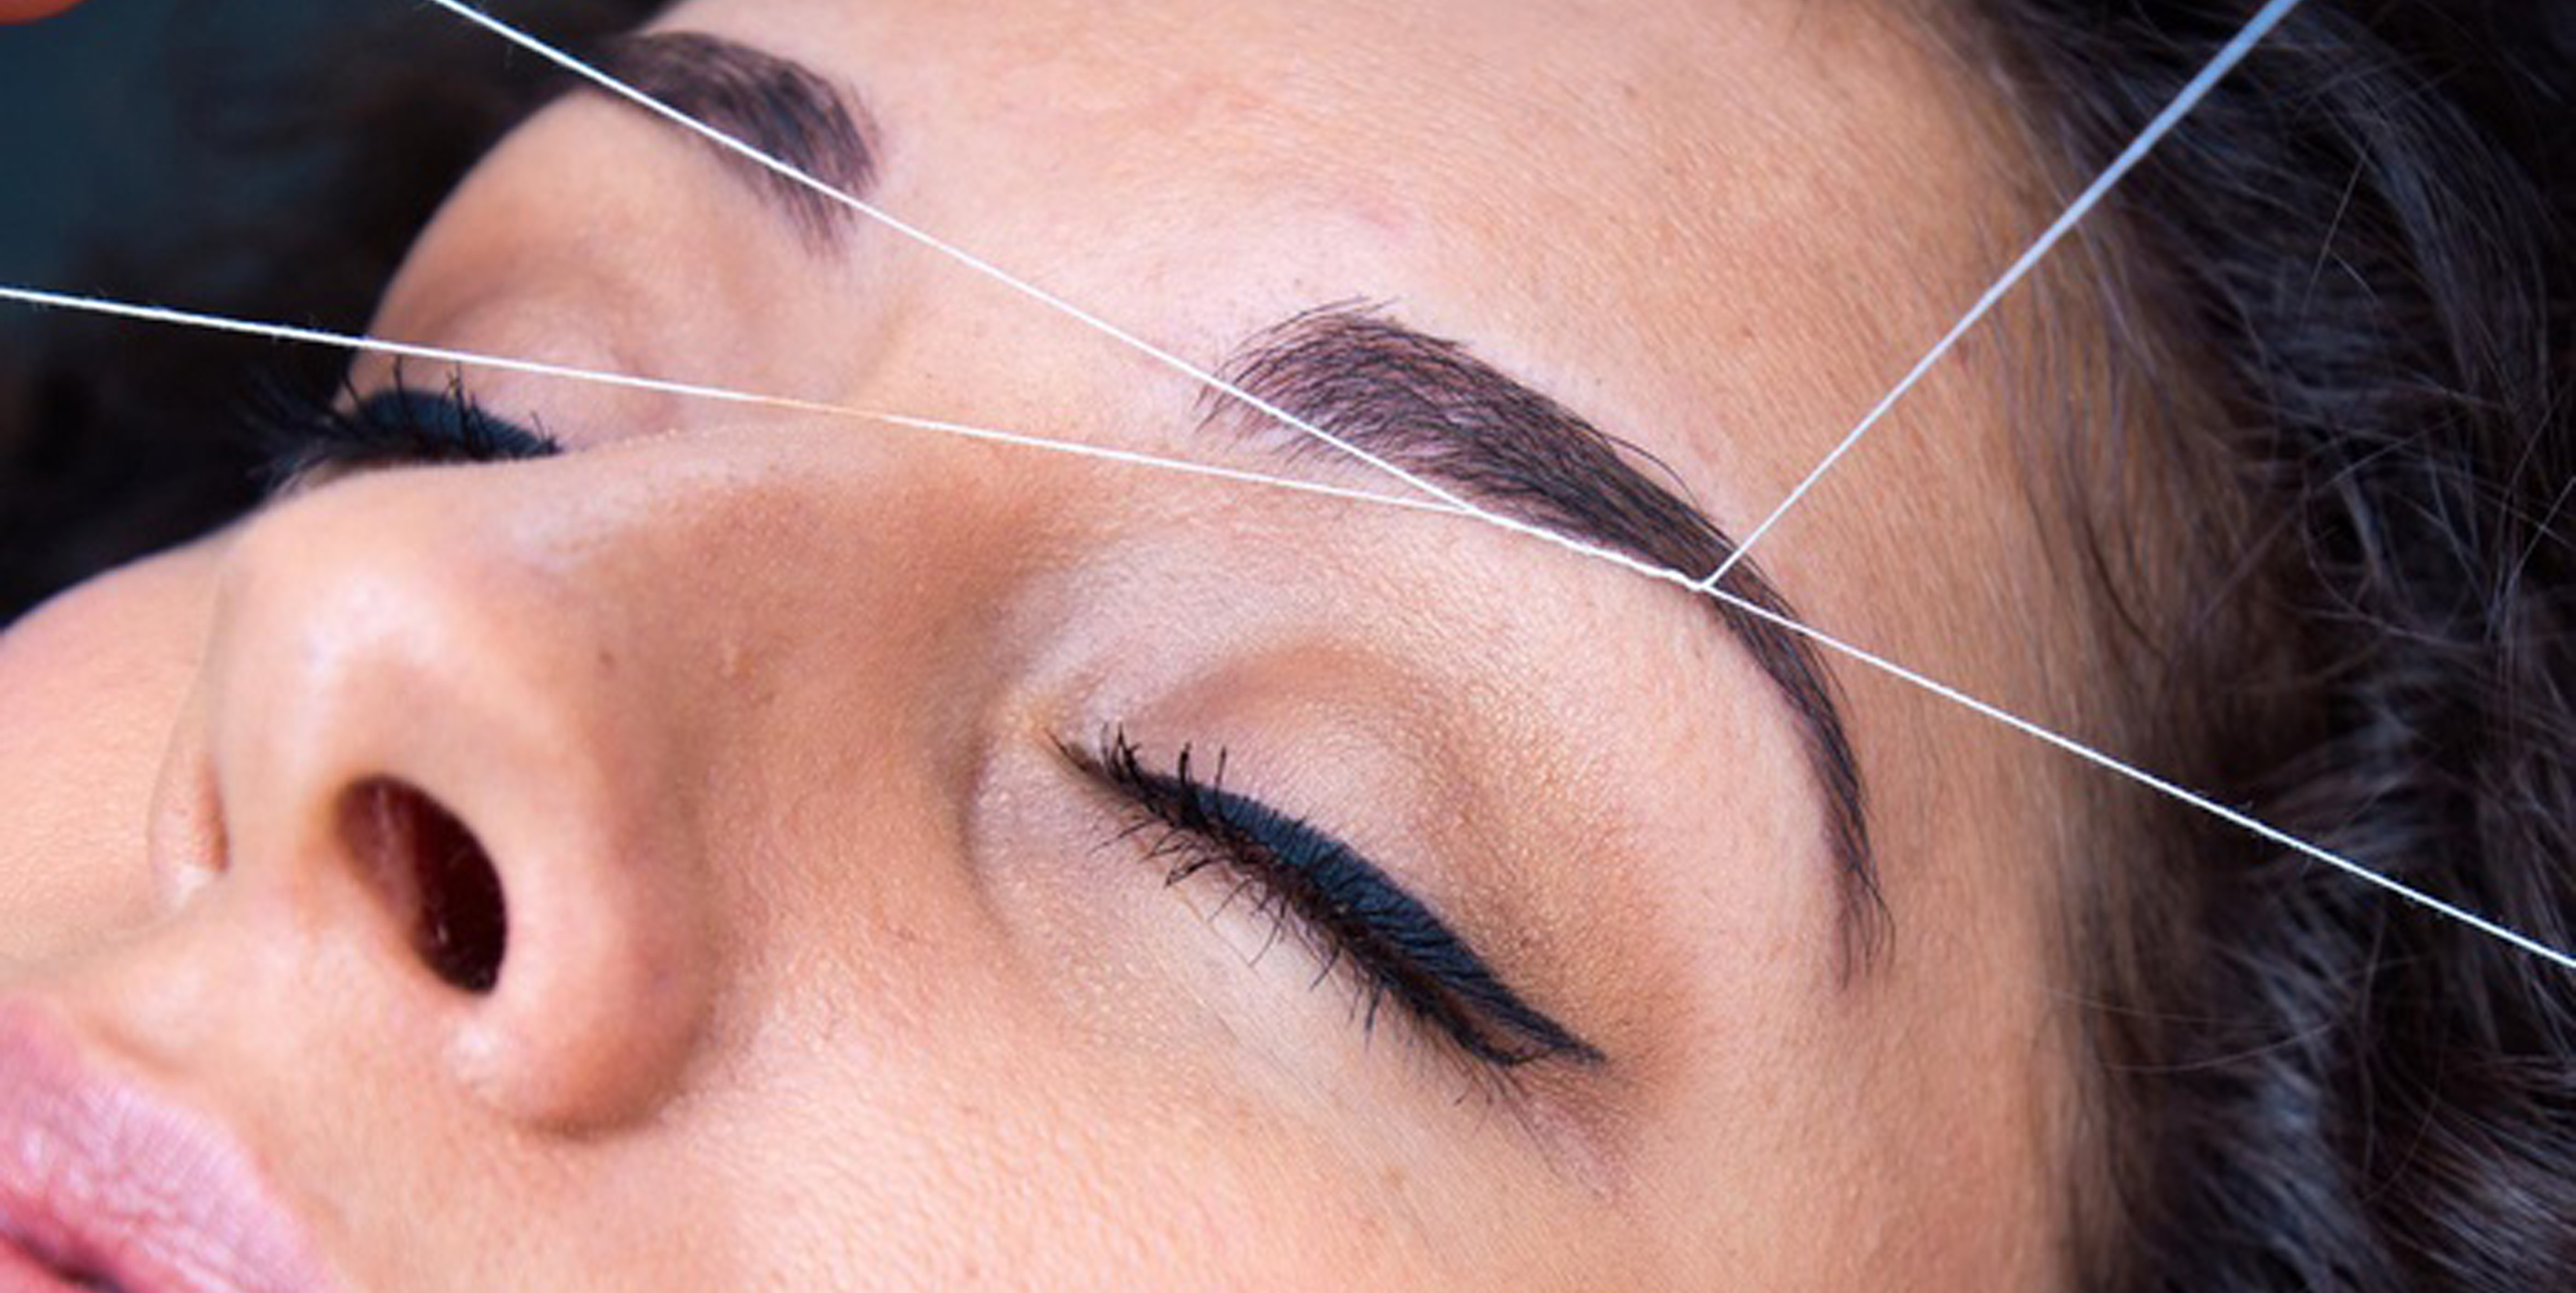 The Thread And Eyebrows Specializes In Eyebrow Threading In Boston Ma